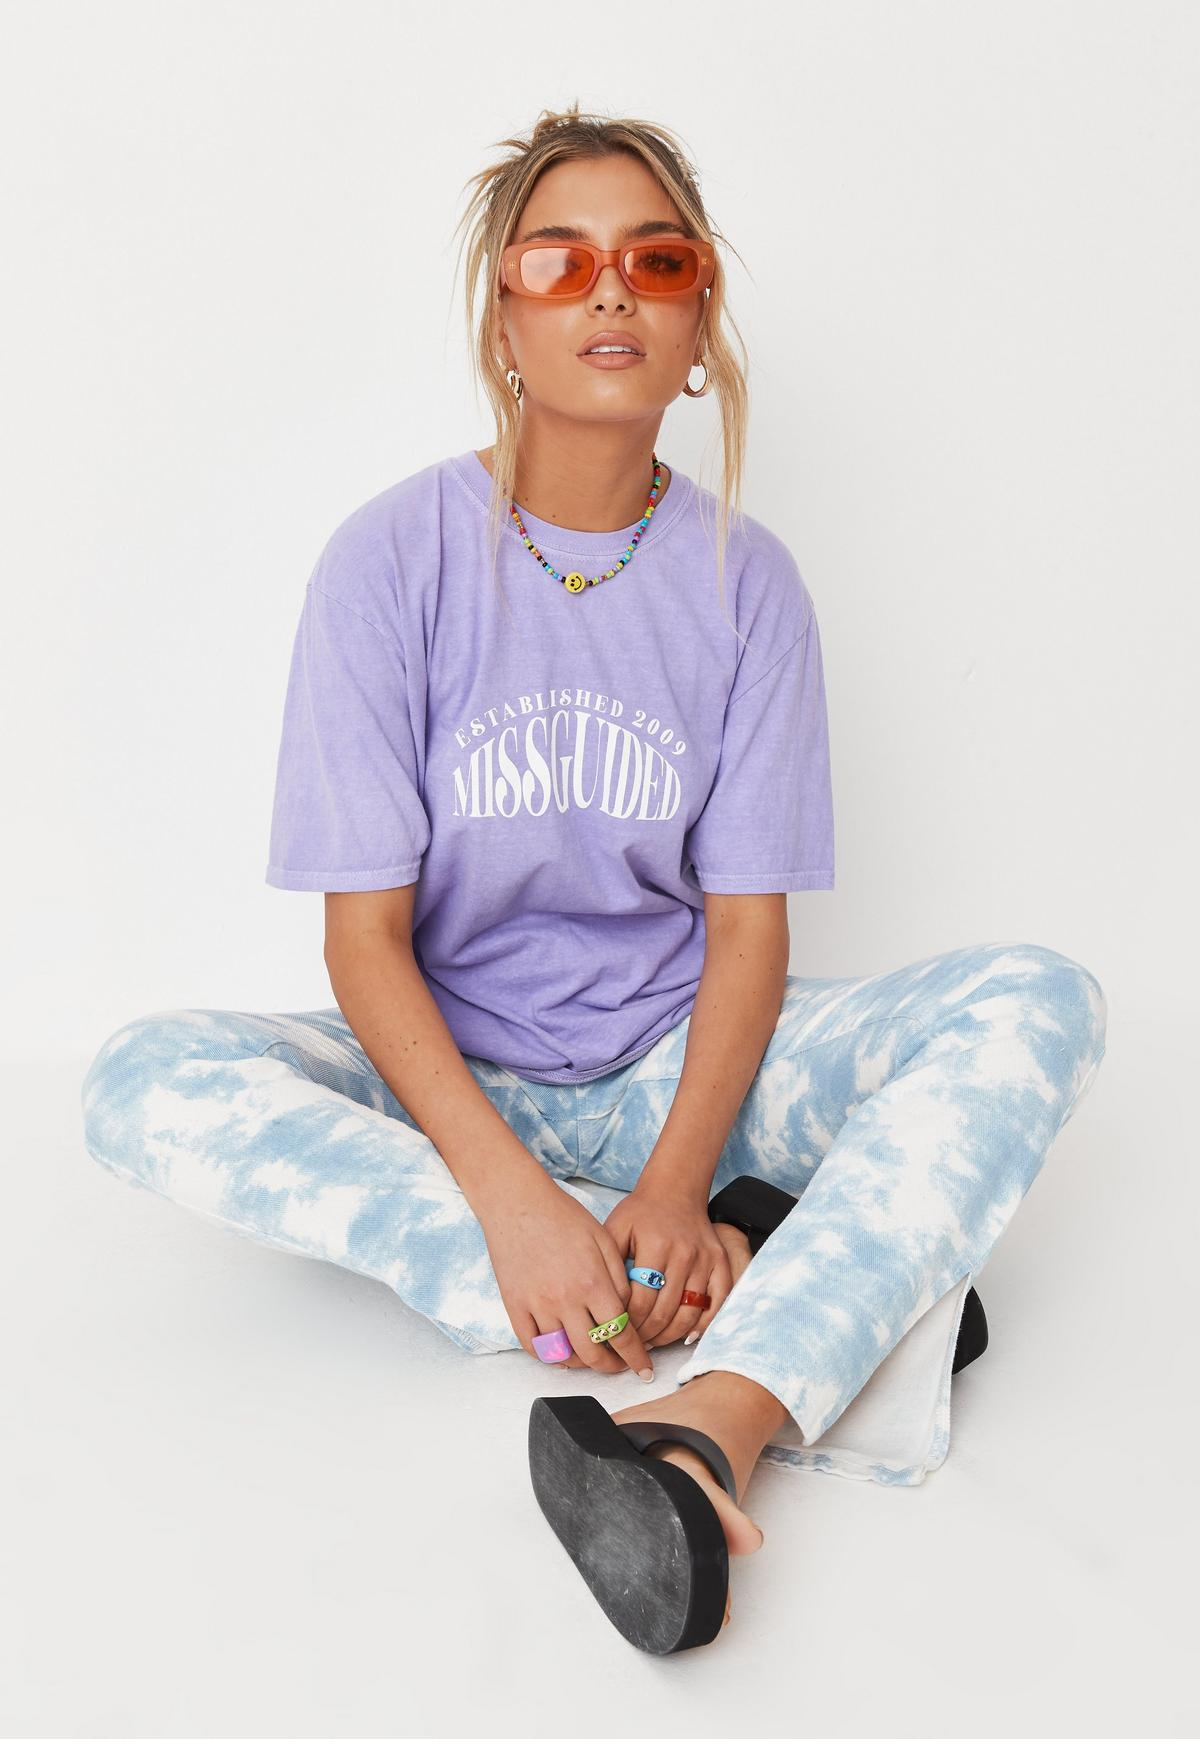 Cute 90s inspired outfit with purple t-shirt and tie dye leggings